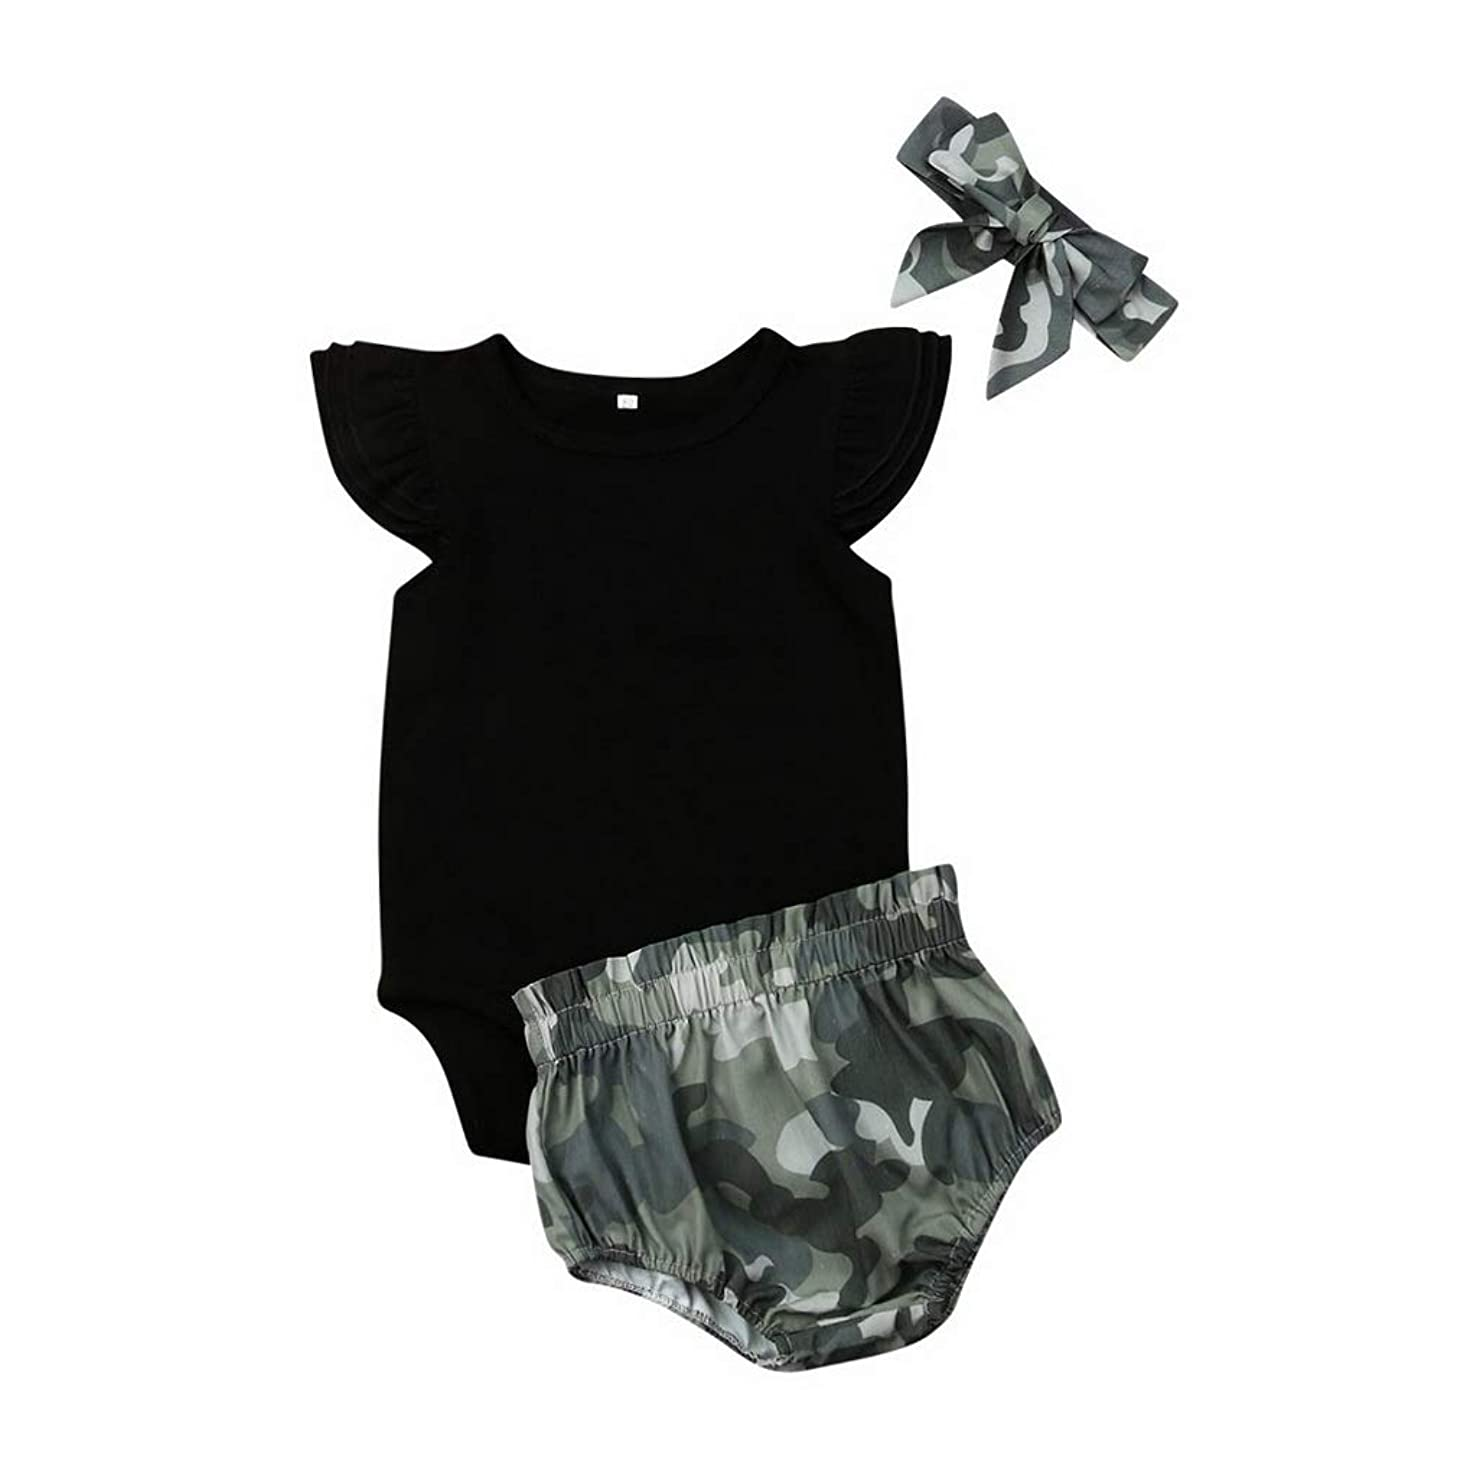 Fashion Cute 3PCS Cute Newborn Baby Girl Outfits Clothes Tops Romper+Camo Shorts Pants Set